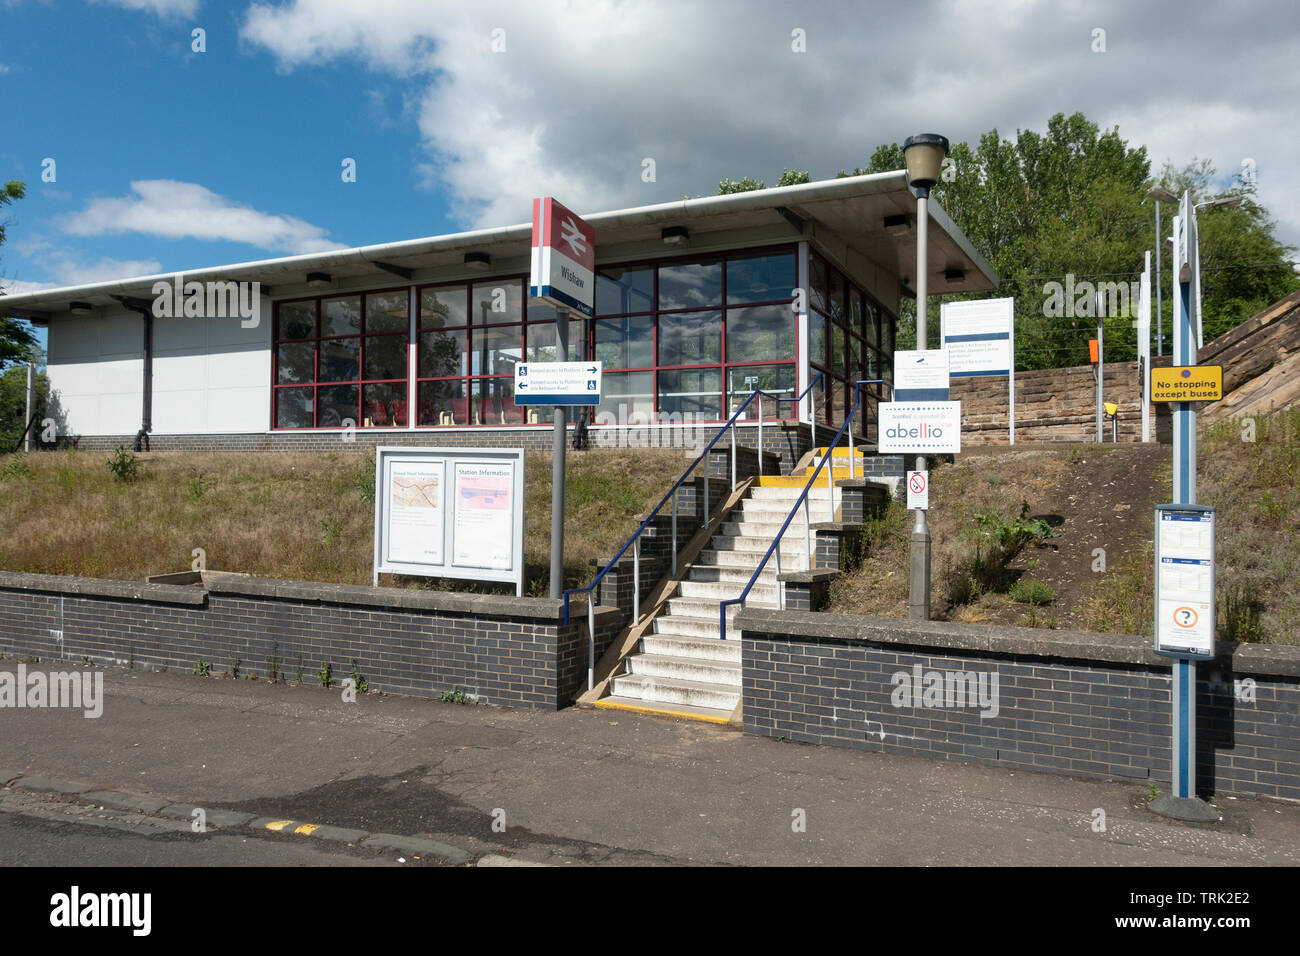 Bus stop outside Wishaw Train station in South Lanarkshire, Scotland. - Stock Image